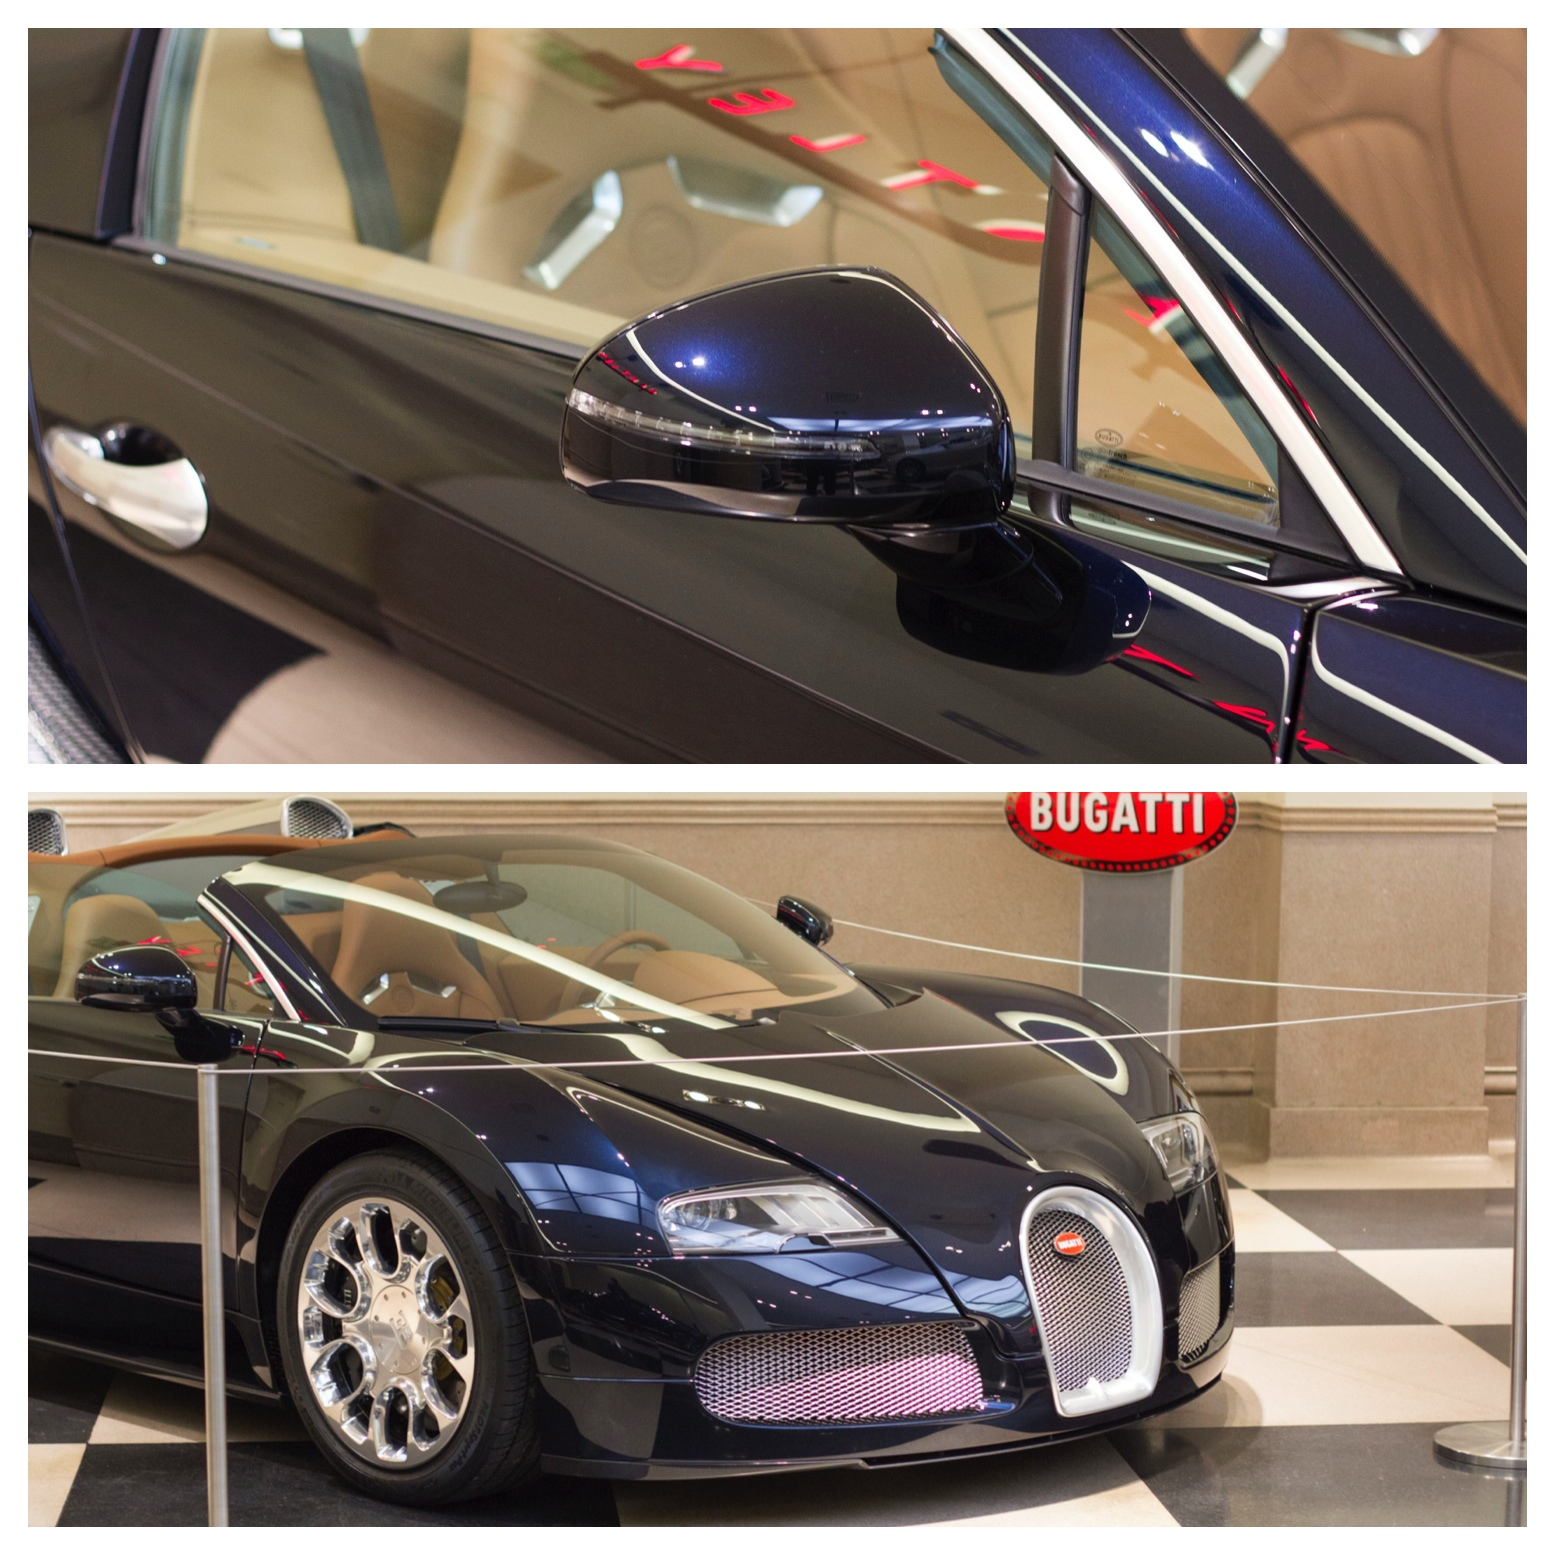 Last Orders for Bugatti Veyron